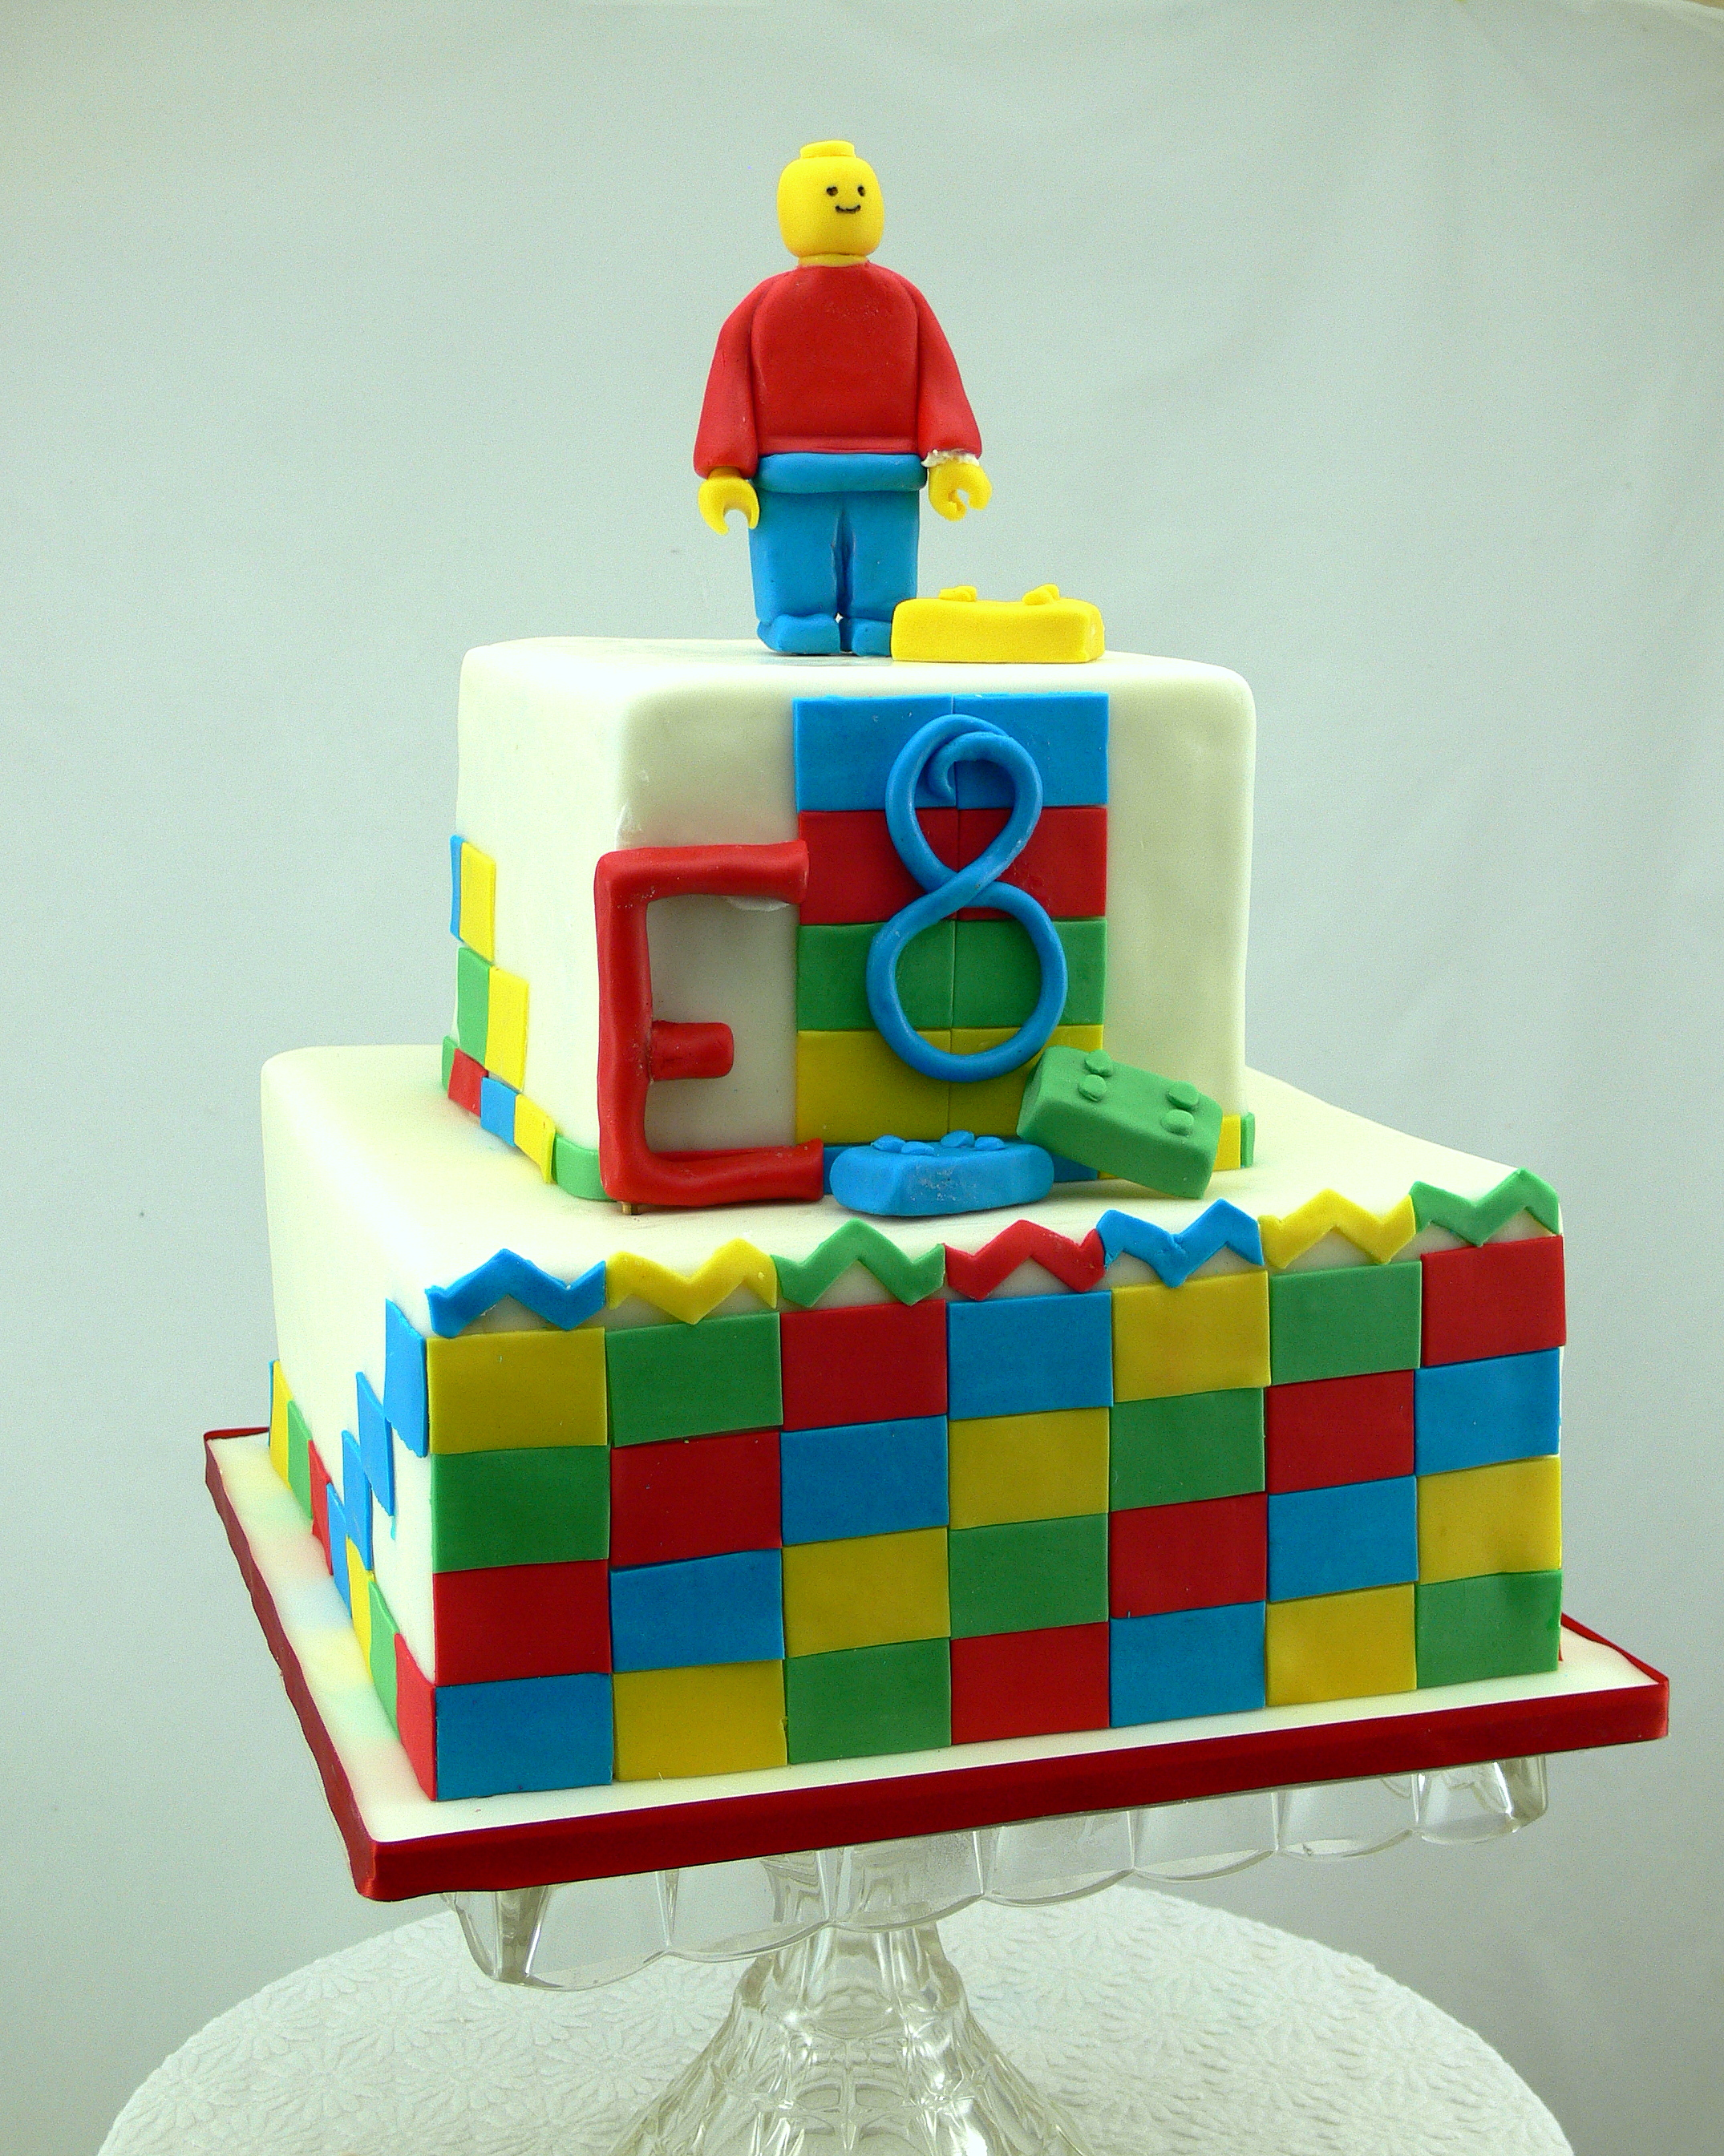 Lego Man Birthday Cake.jpg